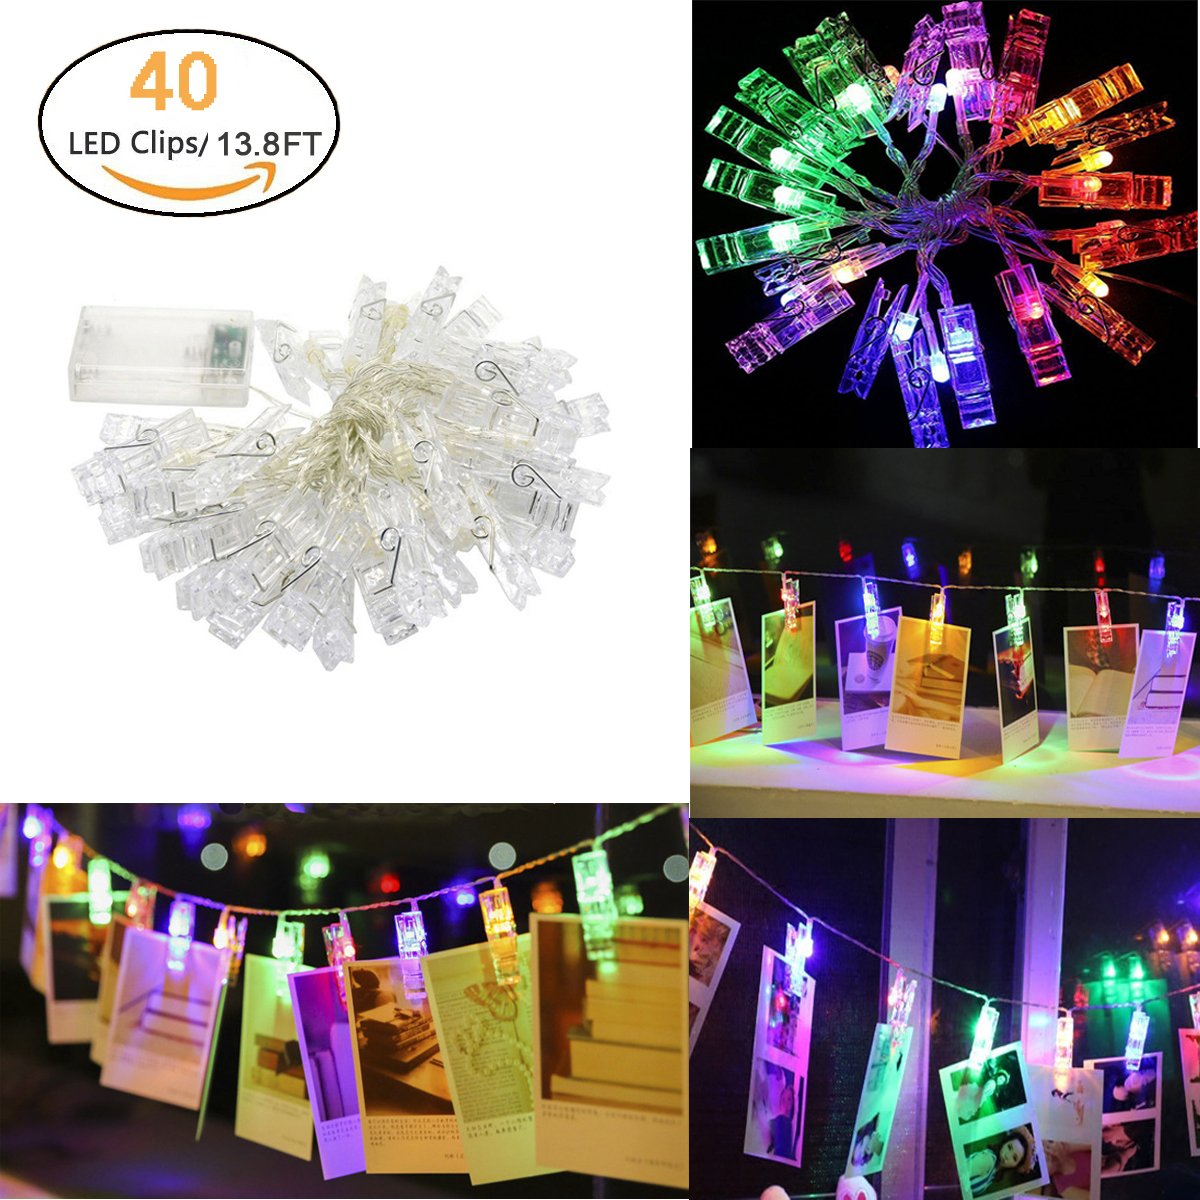 40 Leds Photo Clip String Lights, Vivian Battery Operated Indoor Fairy String Lights Hanging Photos Picture Display LED Light for Wedding Party Christmas Home Decor 13.8 Feet (Coloured)